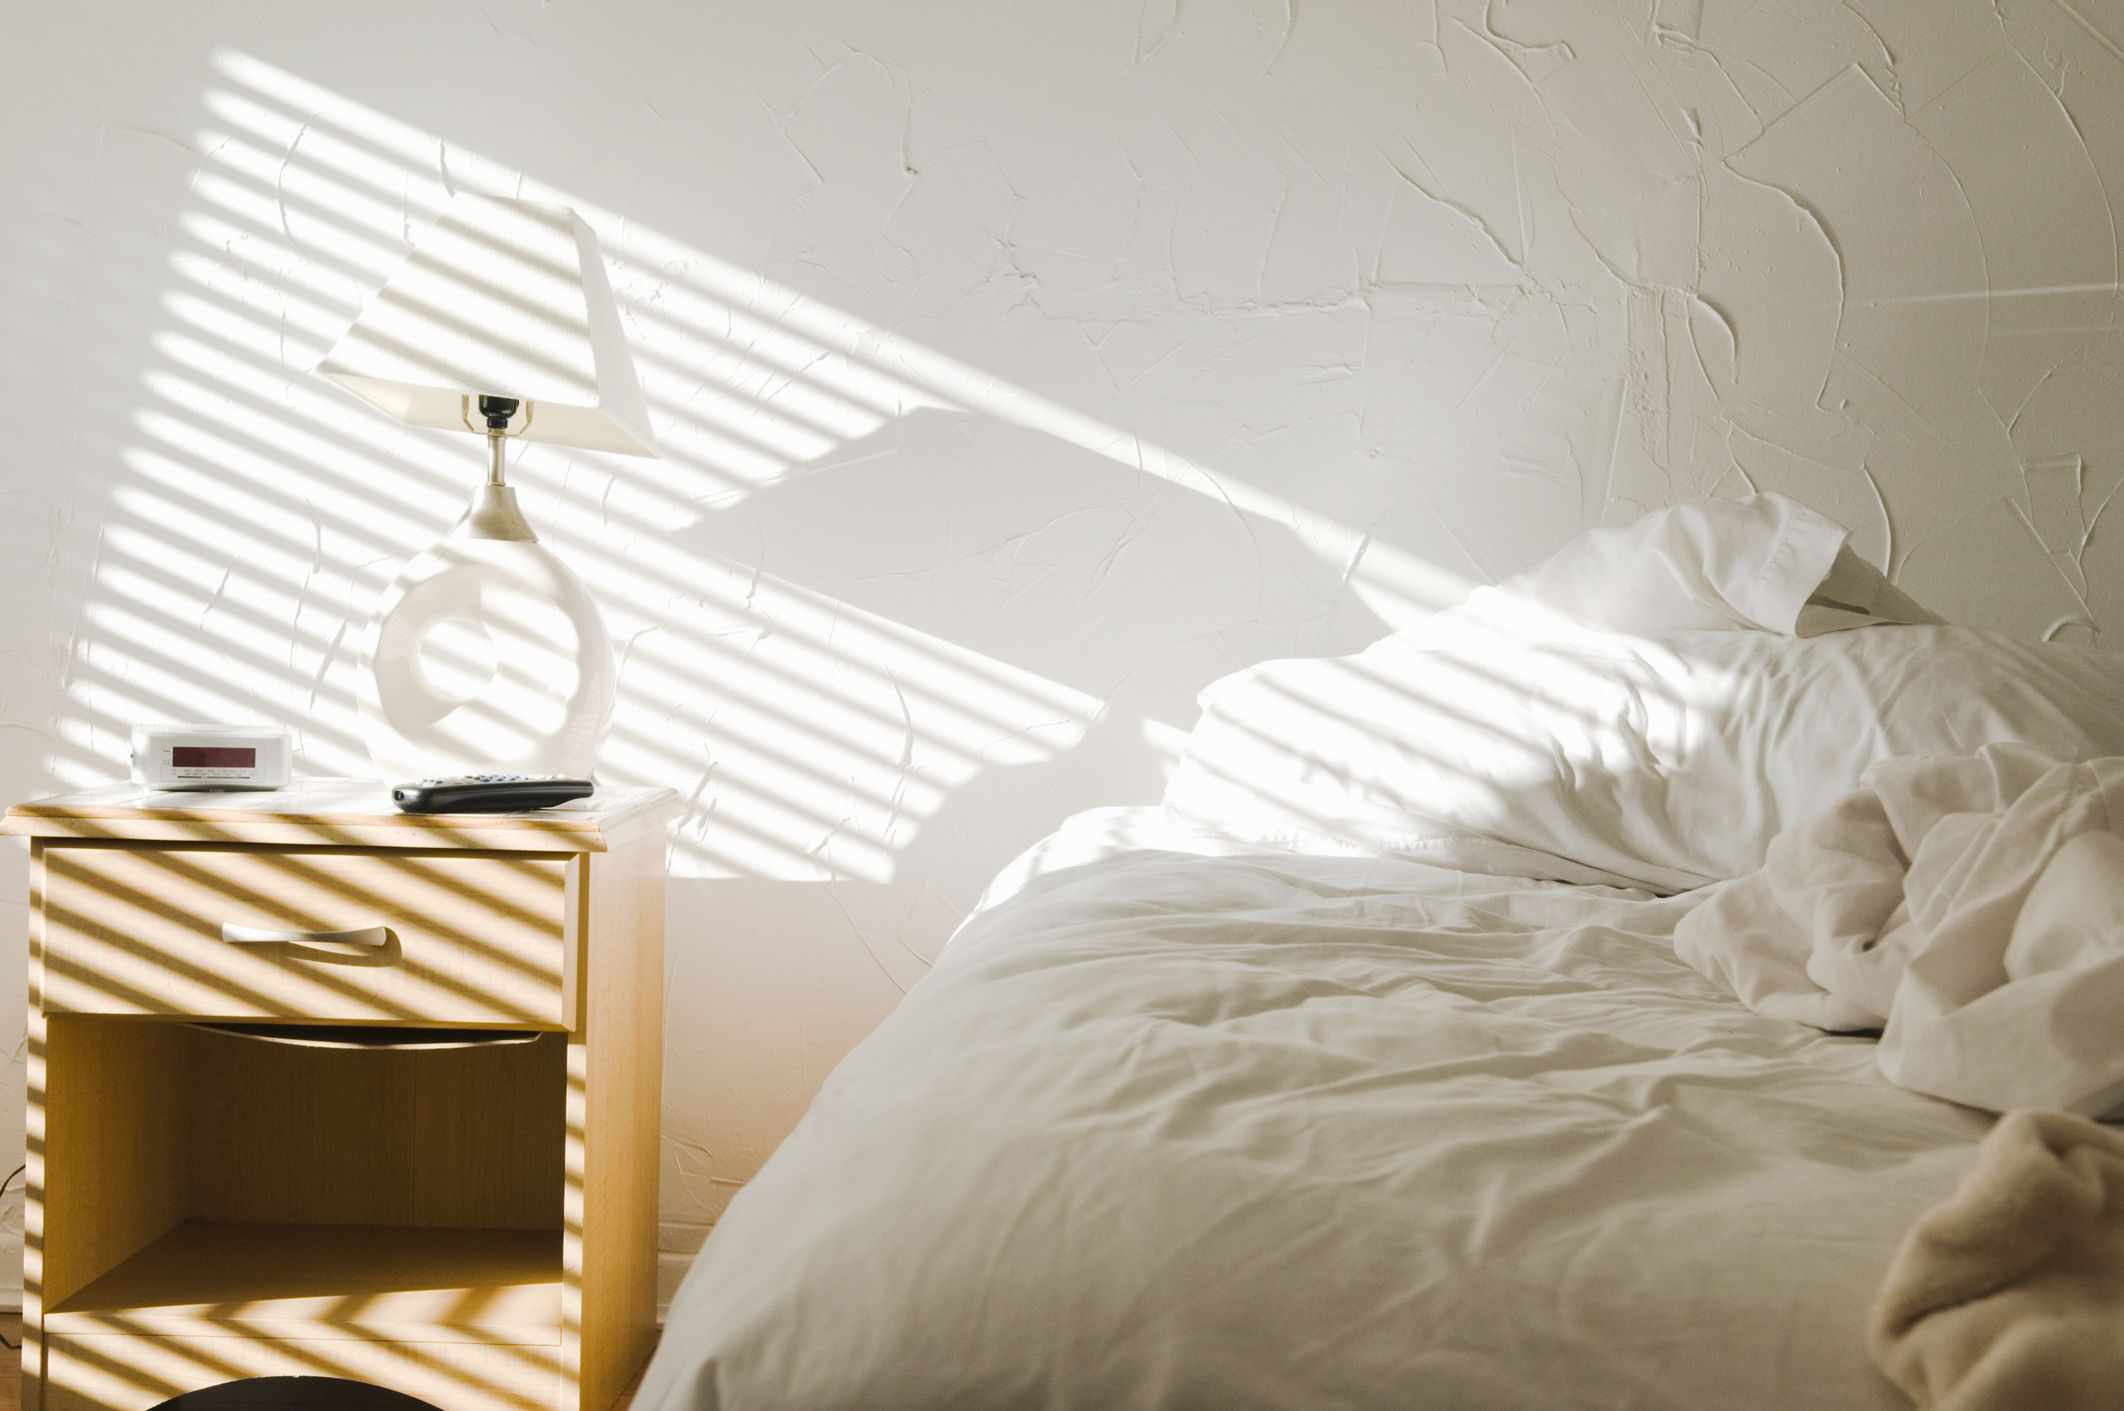 Room with natural lighting